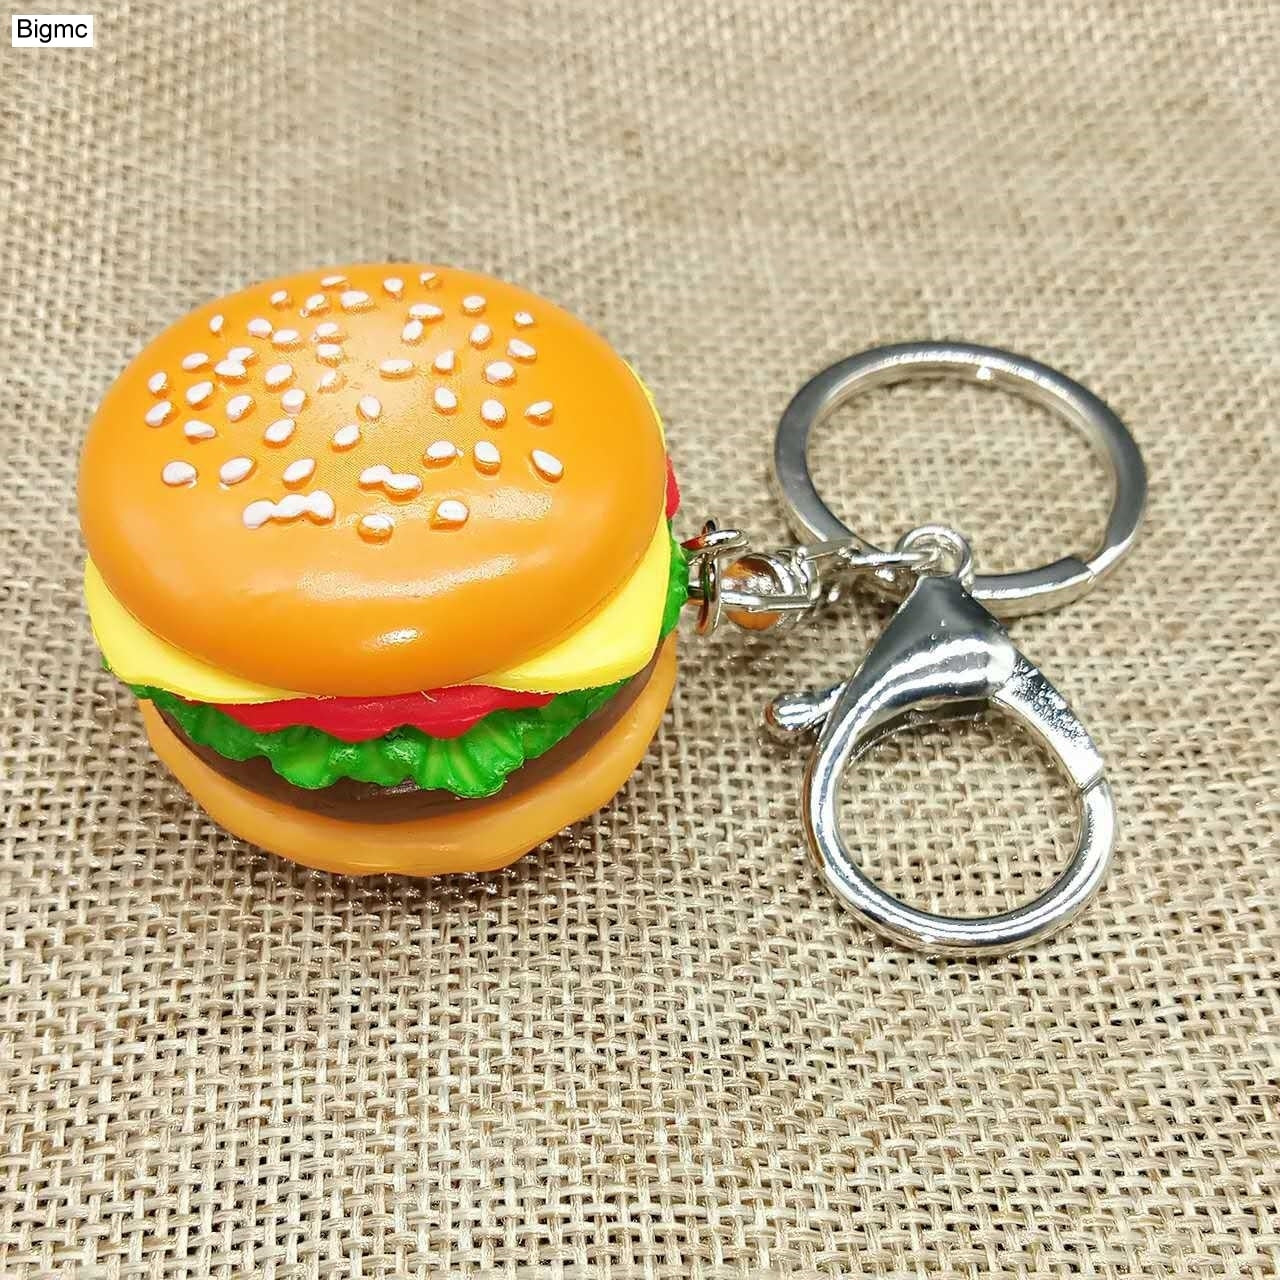 Hamburger Key Chain - Fashion Simulation Food Hamburger Pendant Key Ring Novelty Key Chain Business Birthday Gift Jewelry K1712